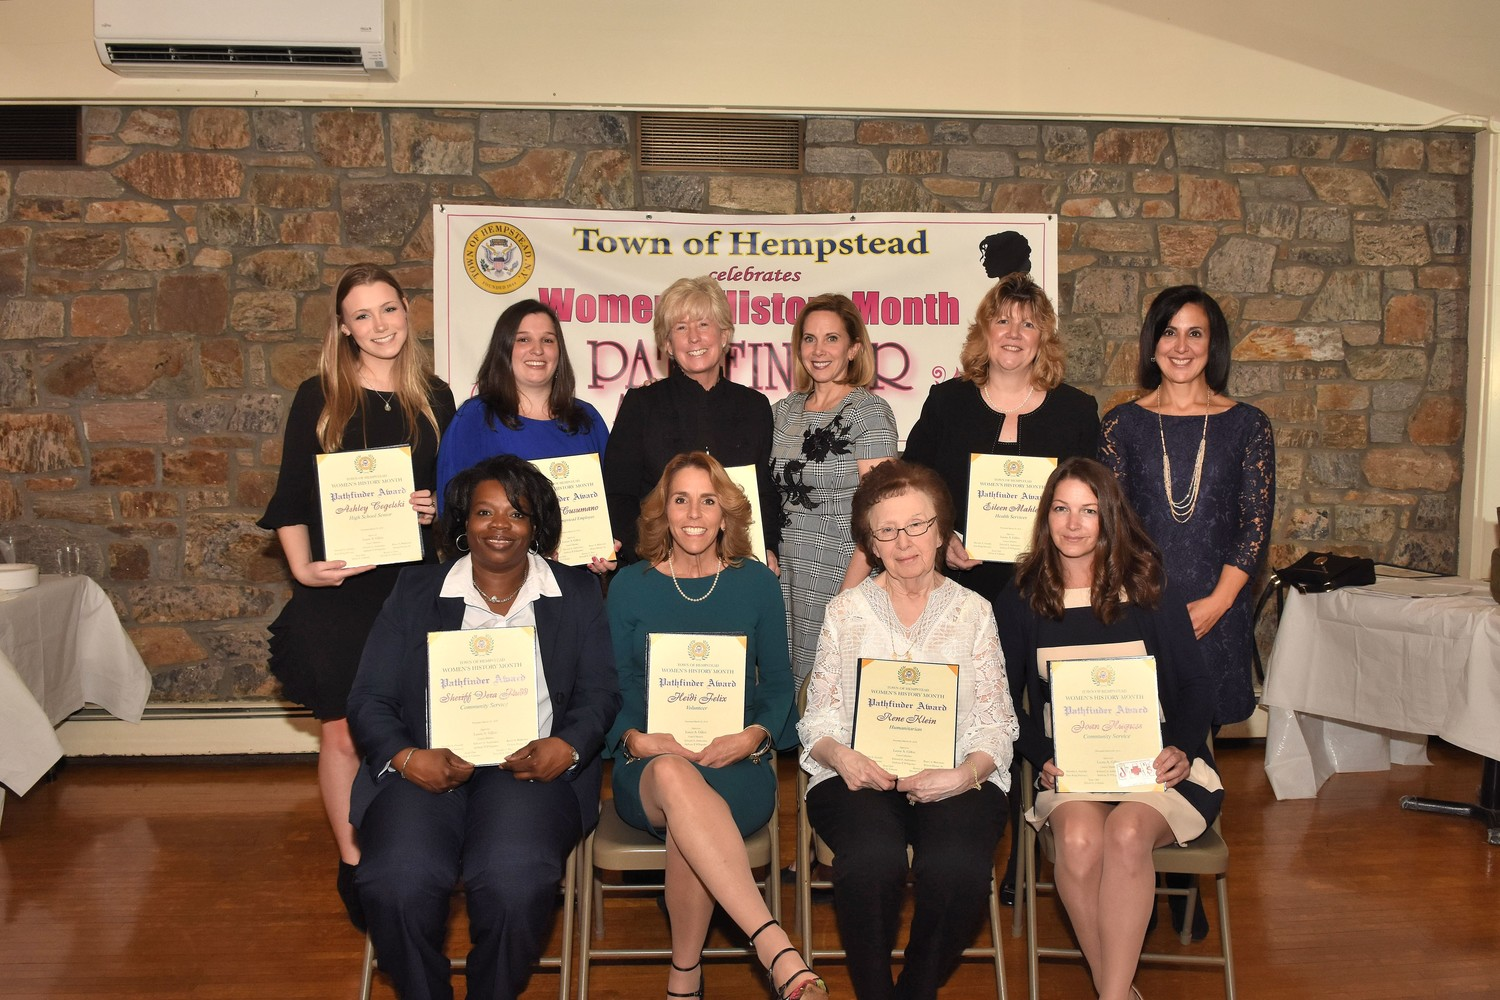 Town Supervisor Laura Gillen and Clerk Sylvia Cabana presented this year's awards.